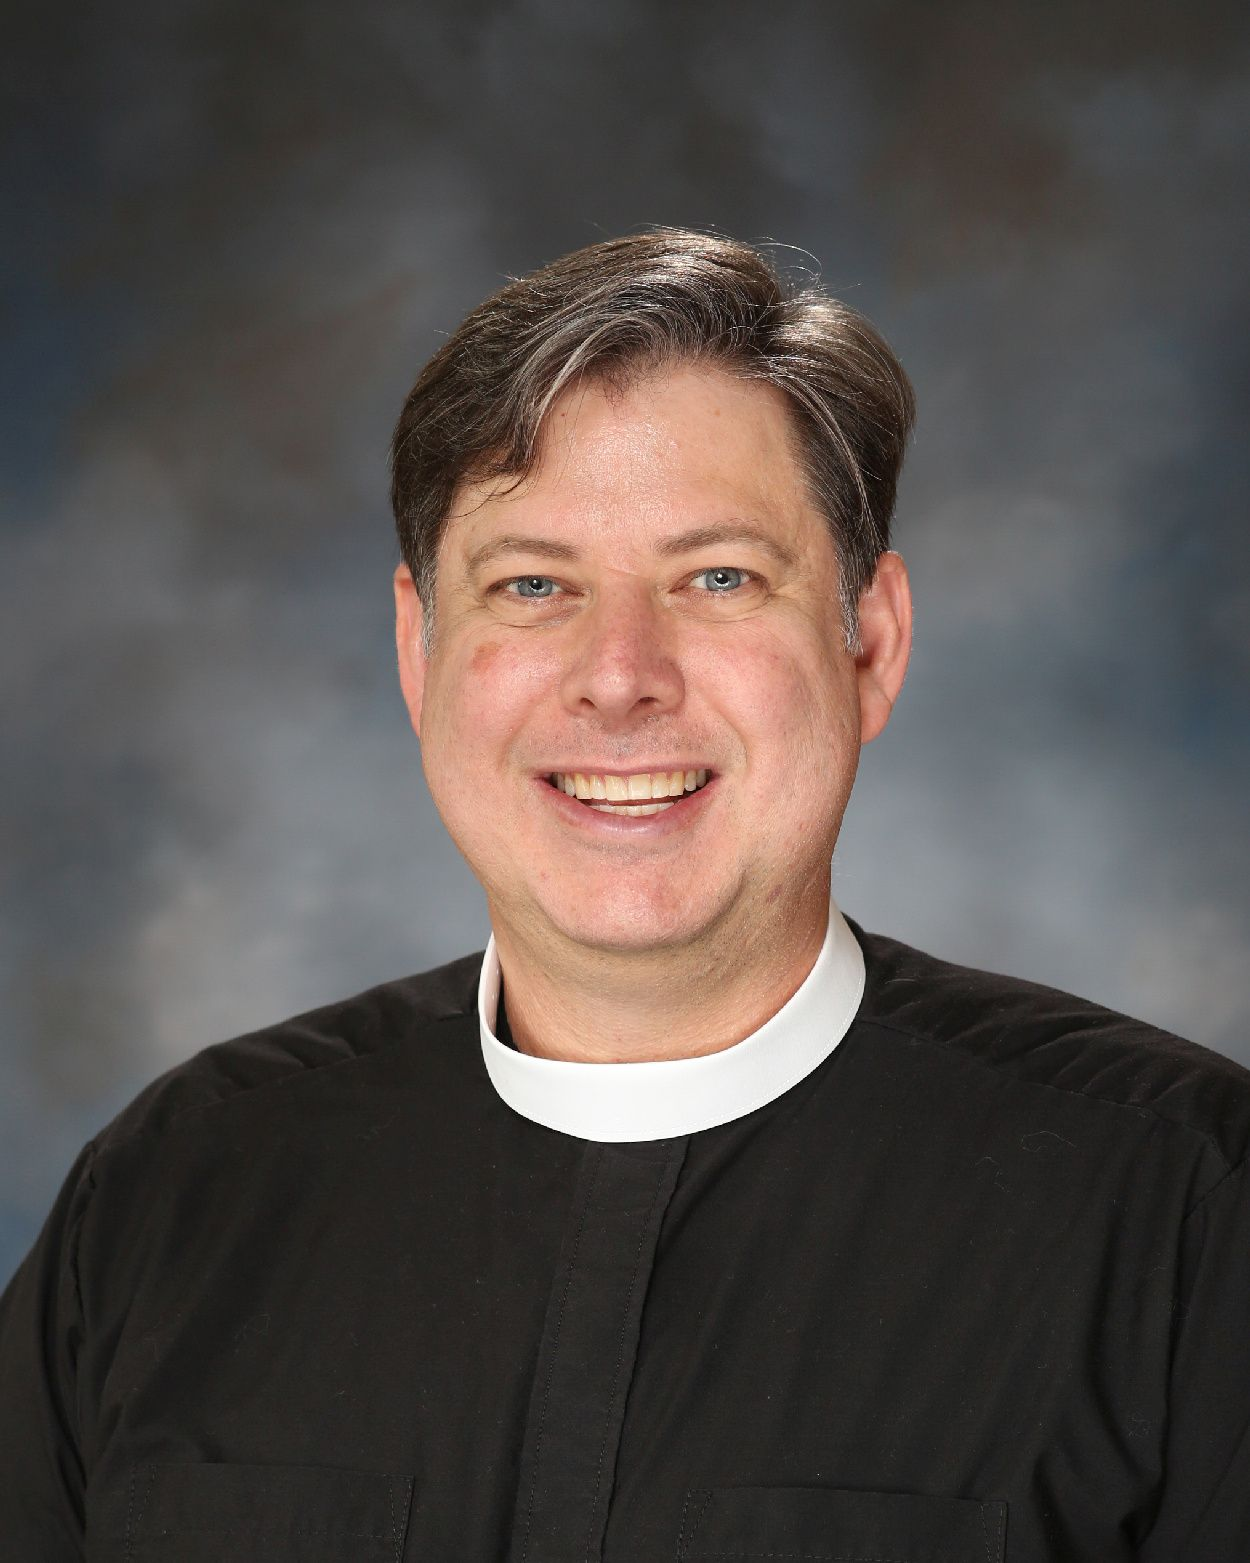 The Rev. James Isaacs, Chaplain to the Middle and Upper Schools